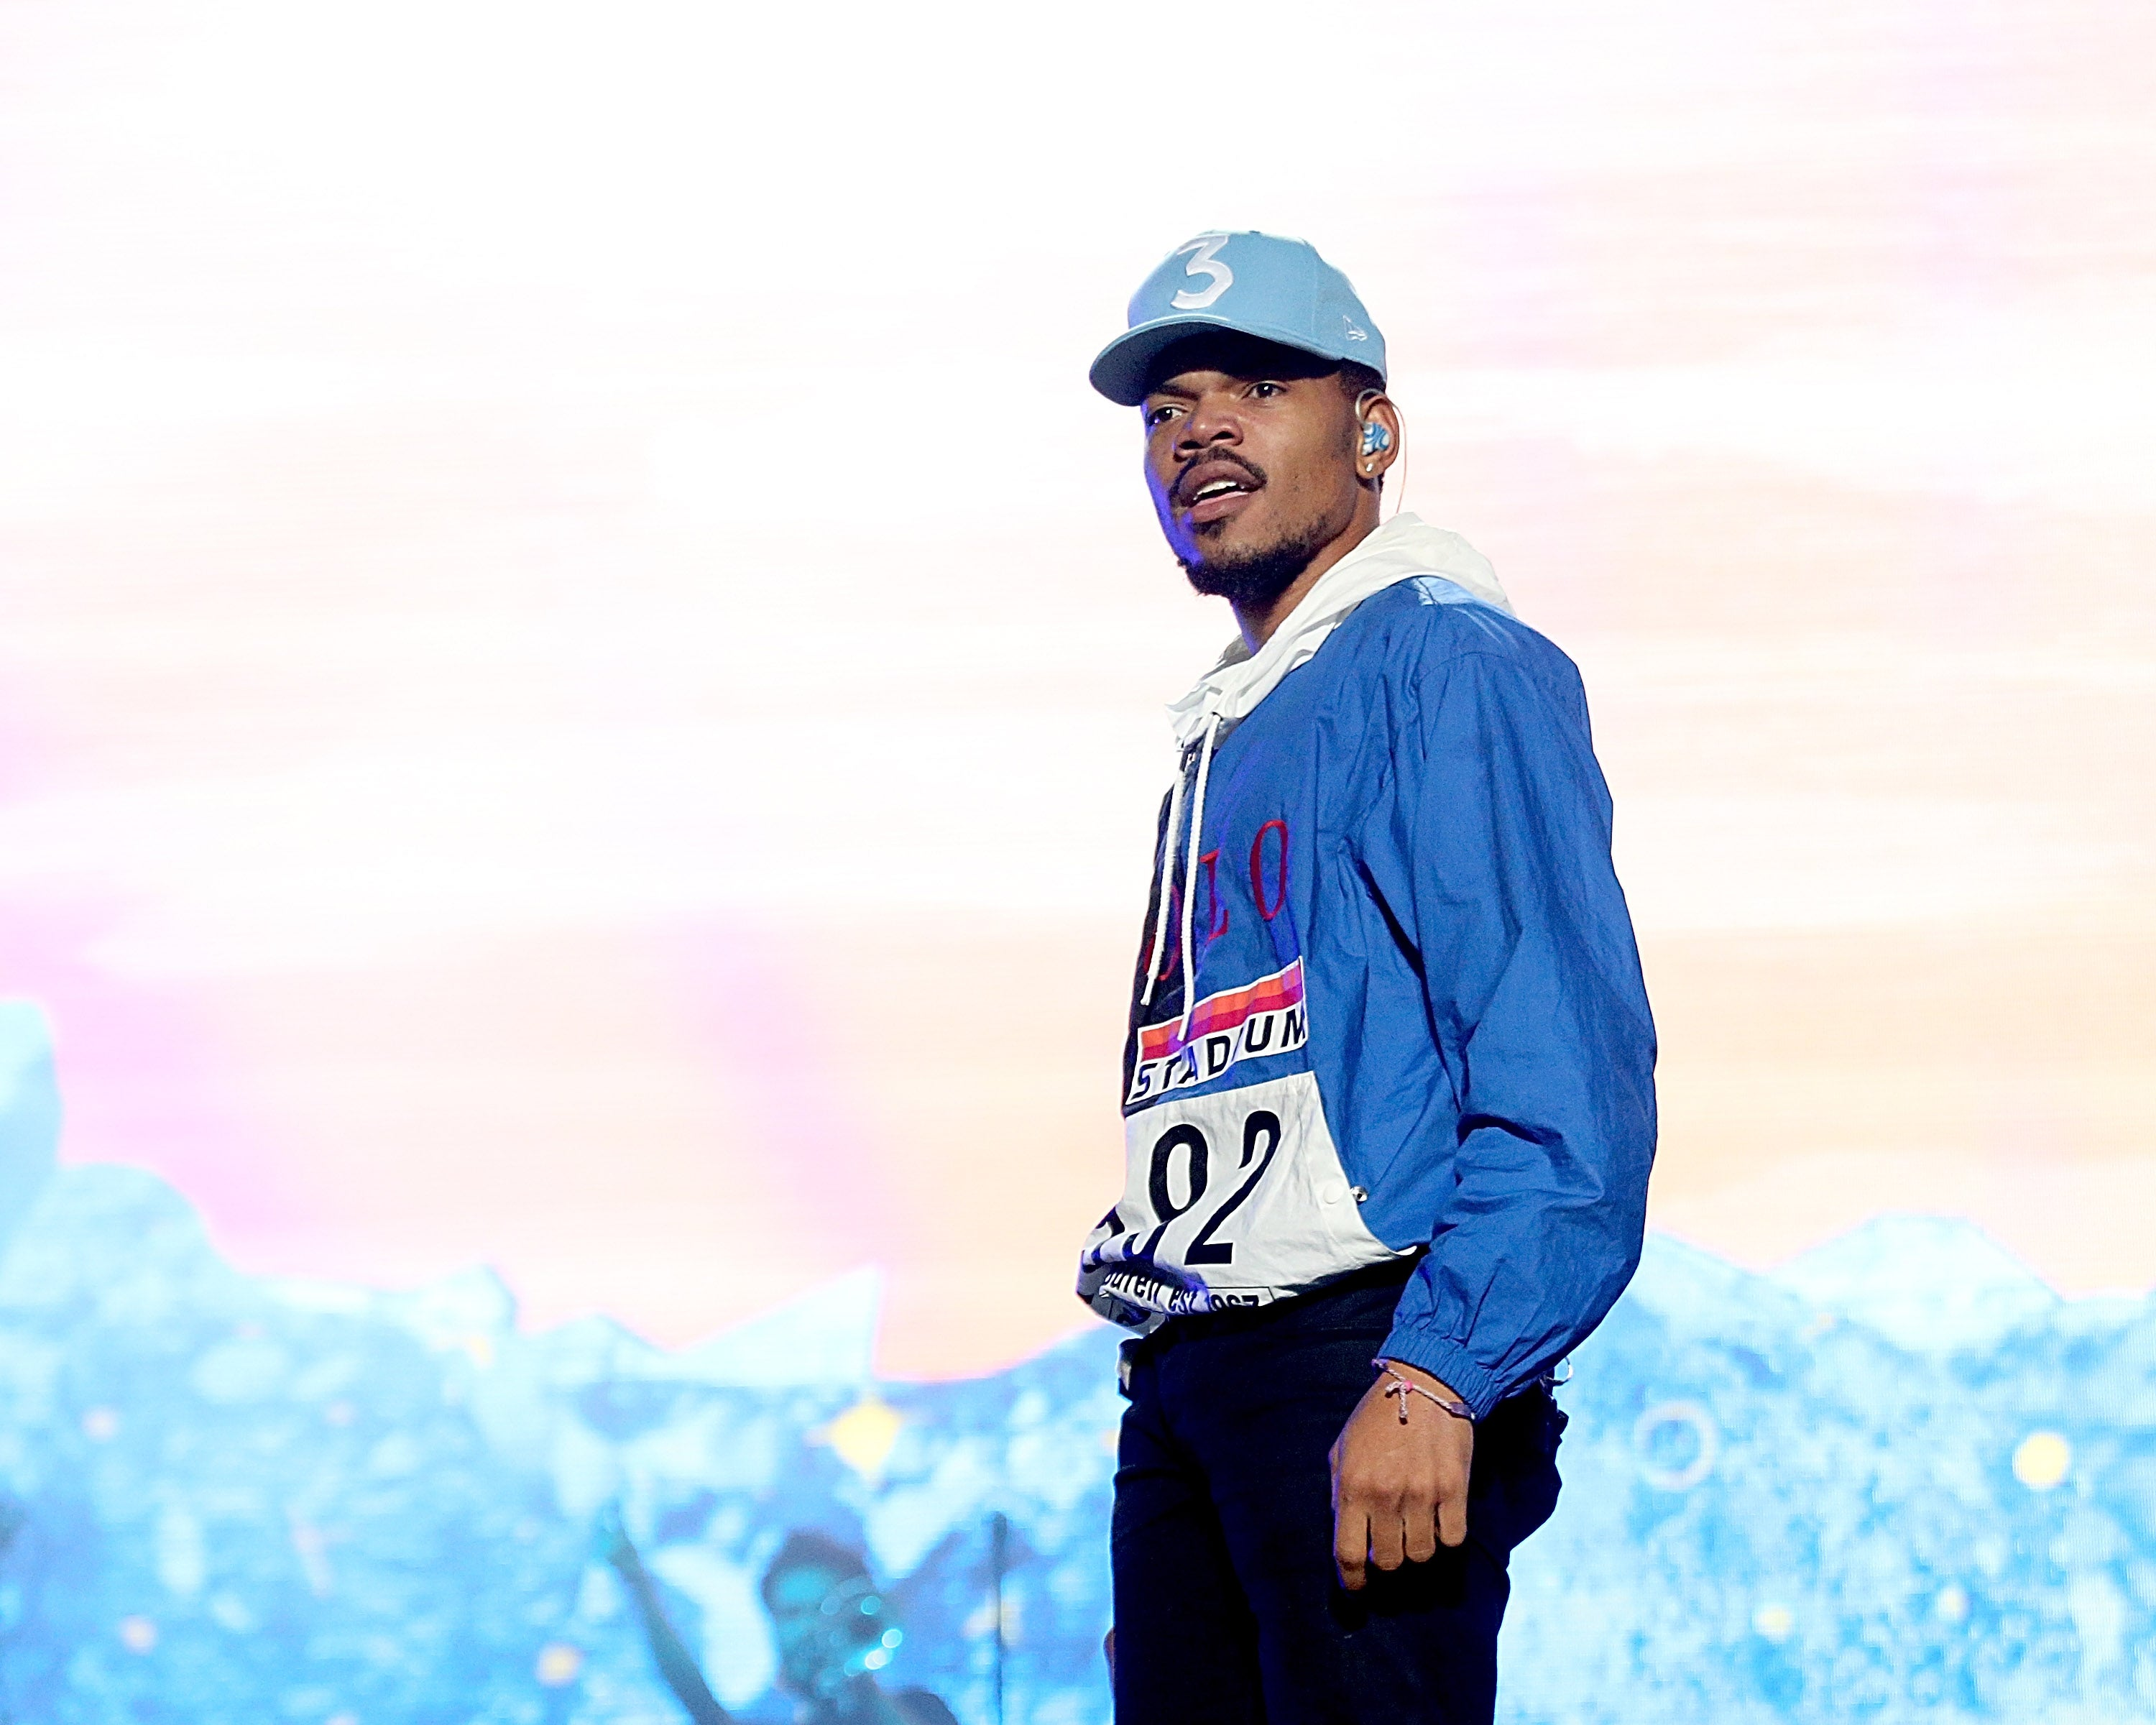 Chance The Rapper Speaks Out About The Problem With Chicago Building A$95 Million Police Academy